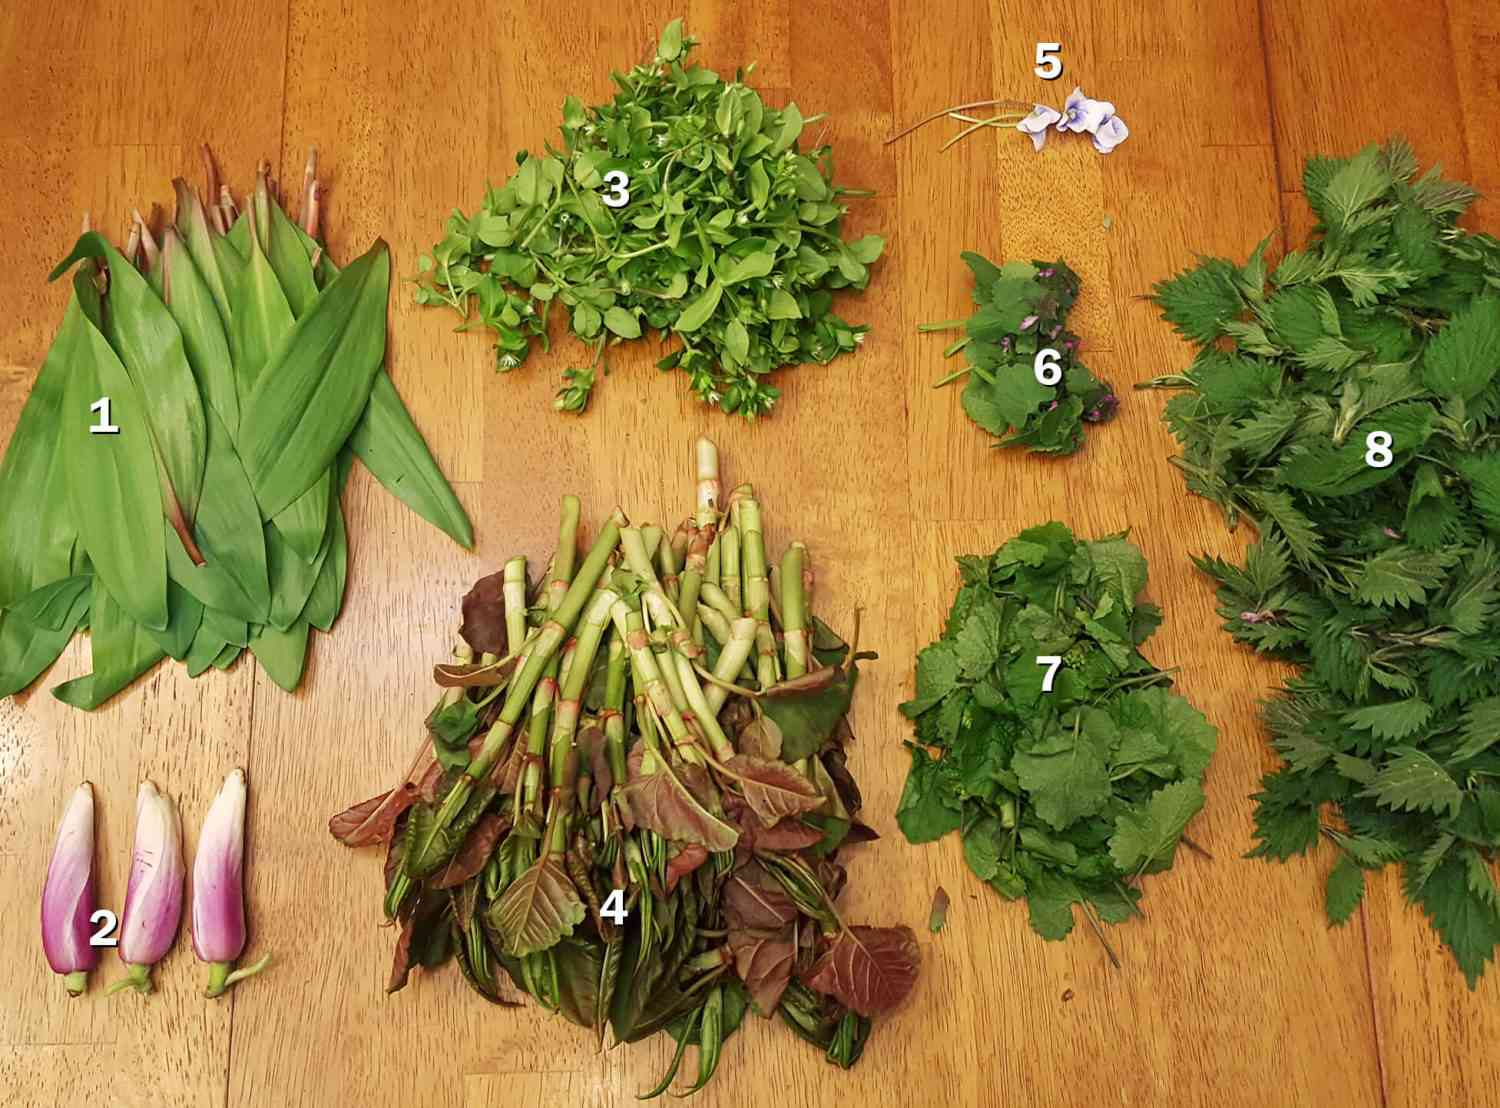 Assortment of foraged greens